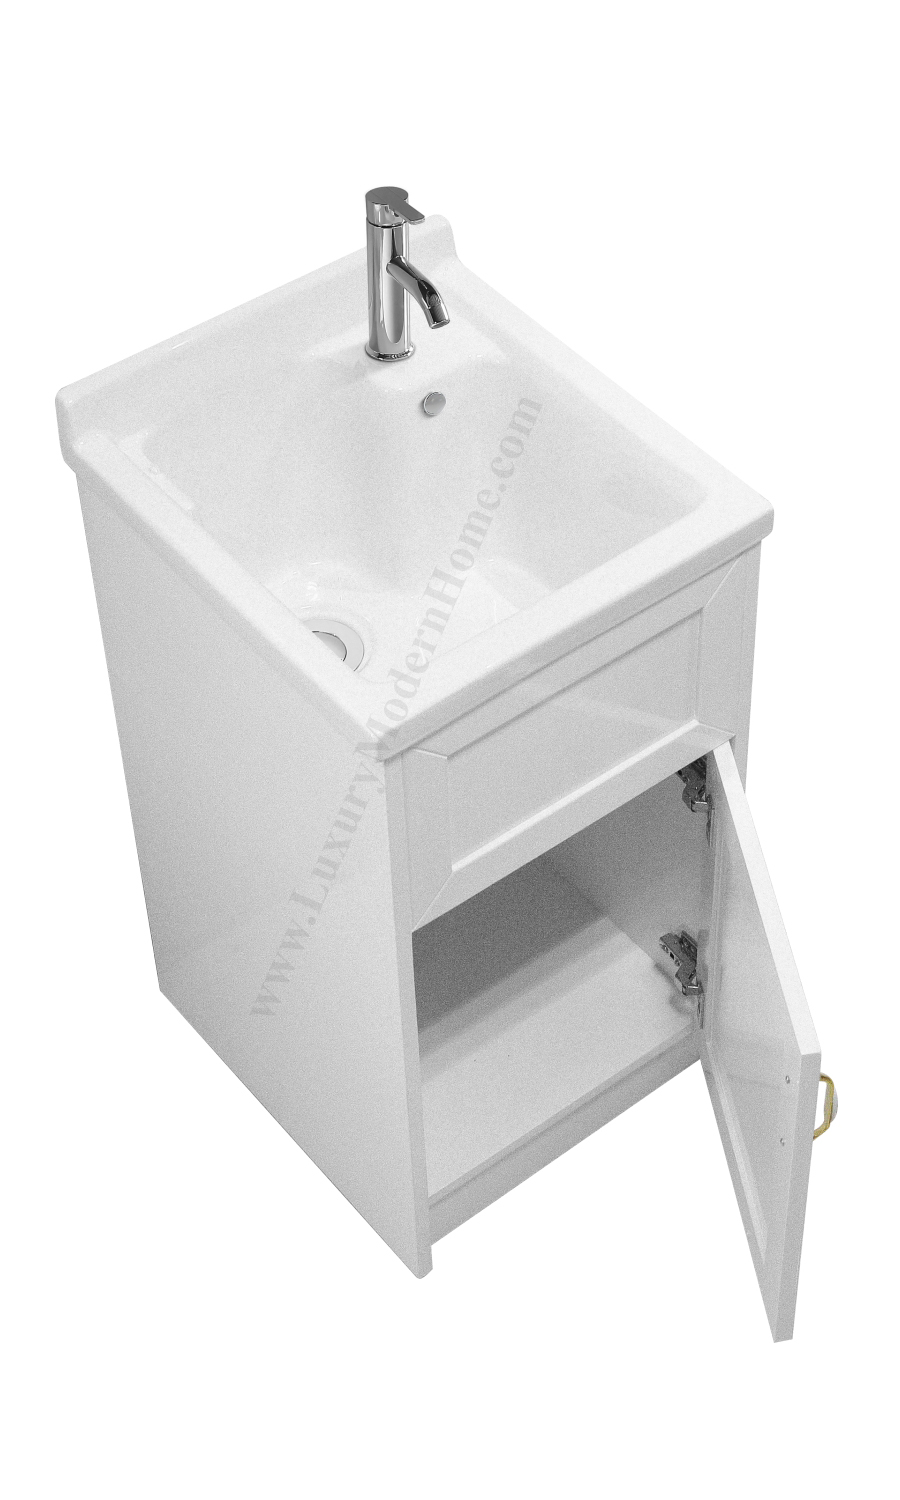 Small Laundry Tubs Sinks : ALEXANDER - 18